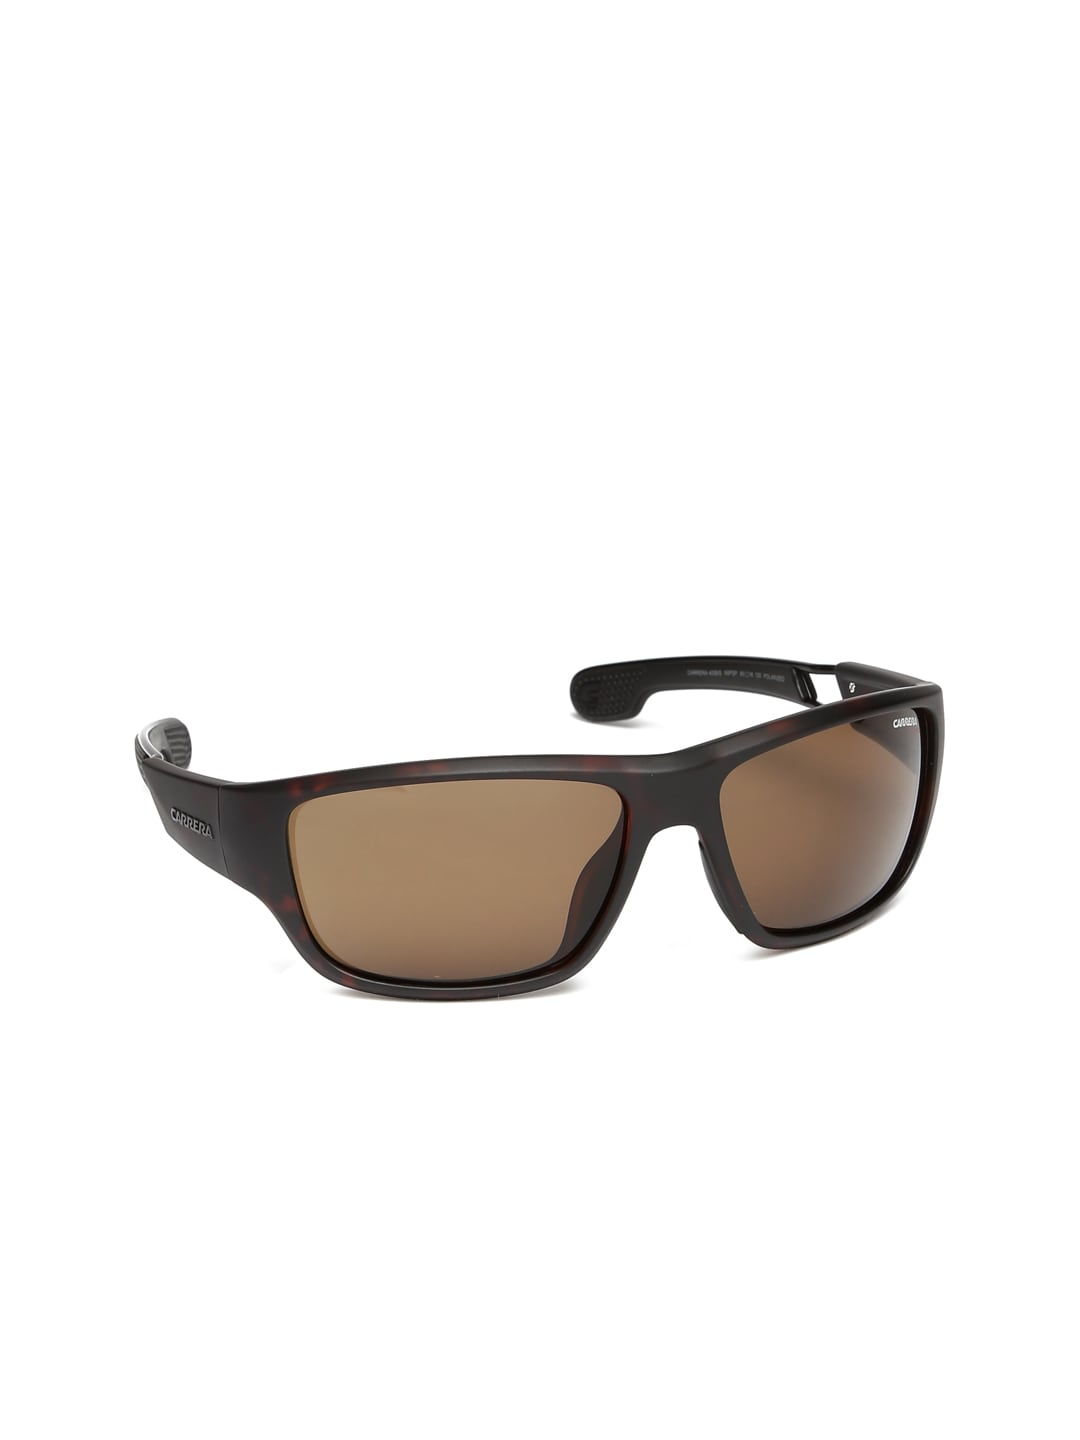 a21b97f093 Carrera Sunglasses -Buy Carrera Sunglass Online in India